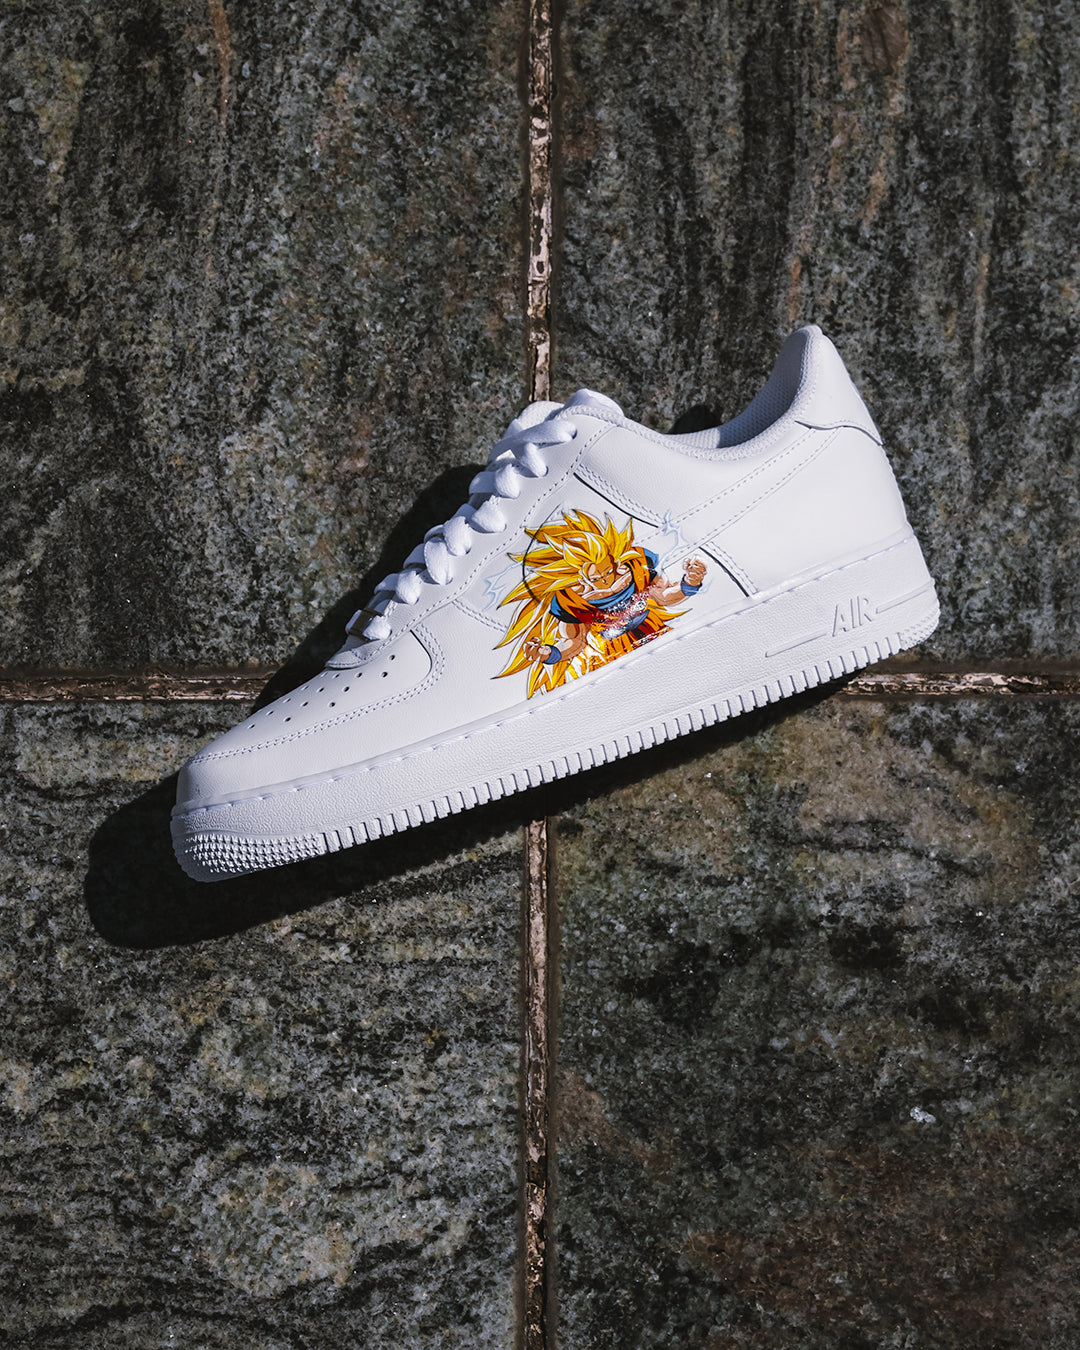 sangoku air force one   custom